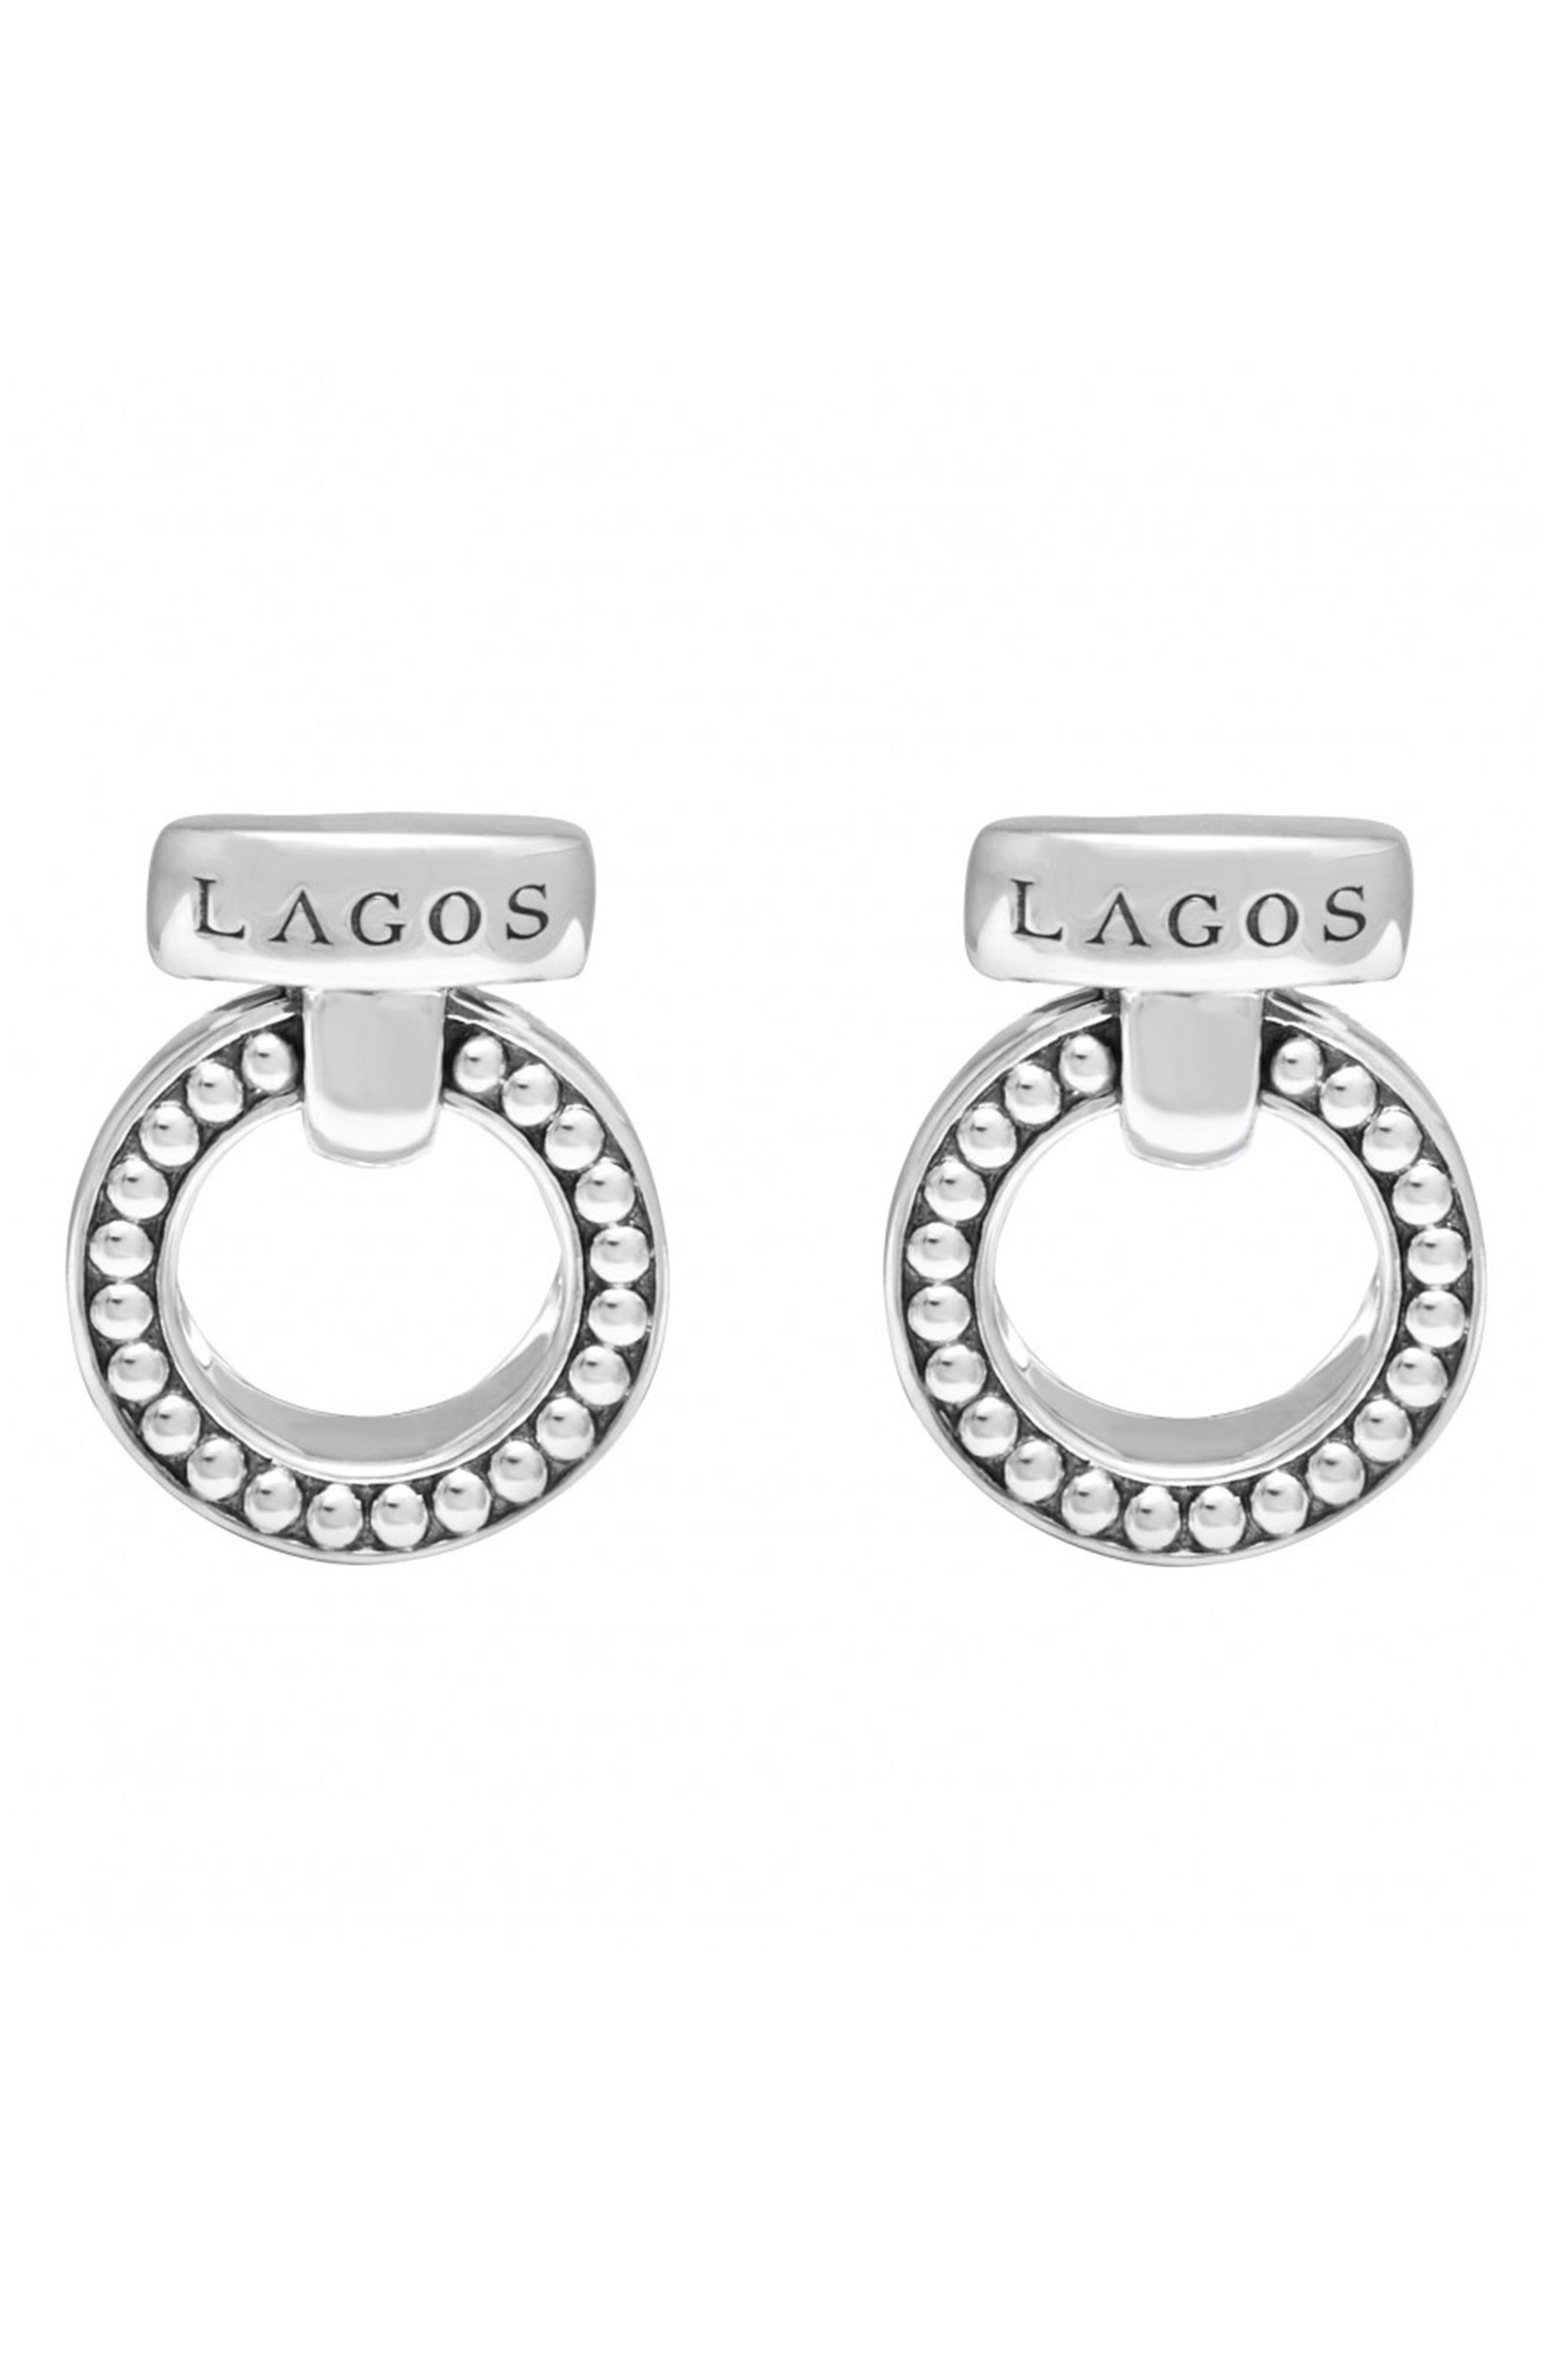 Lagos 'Enso' Caviar™ Clip Earrings